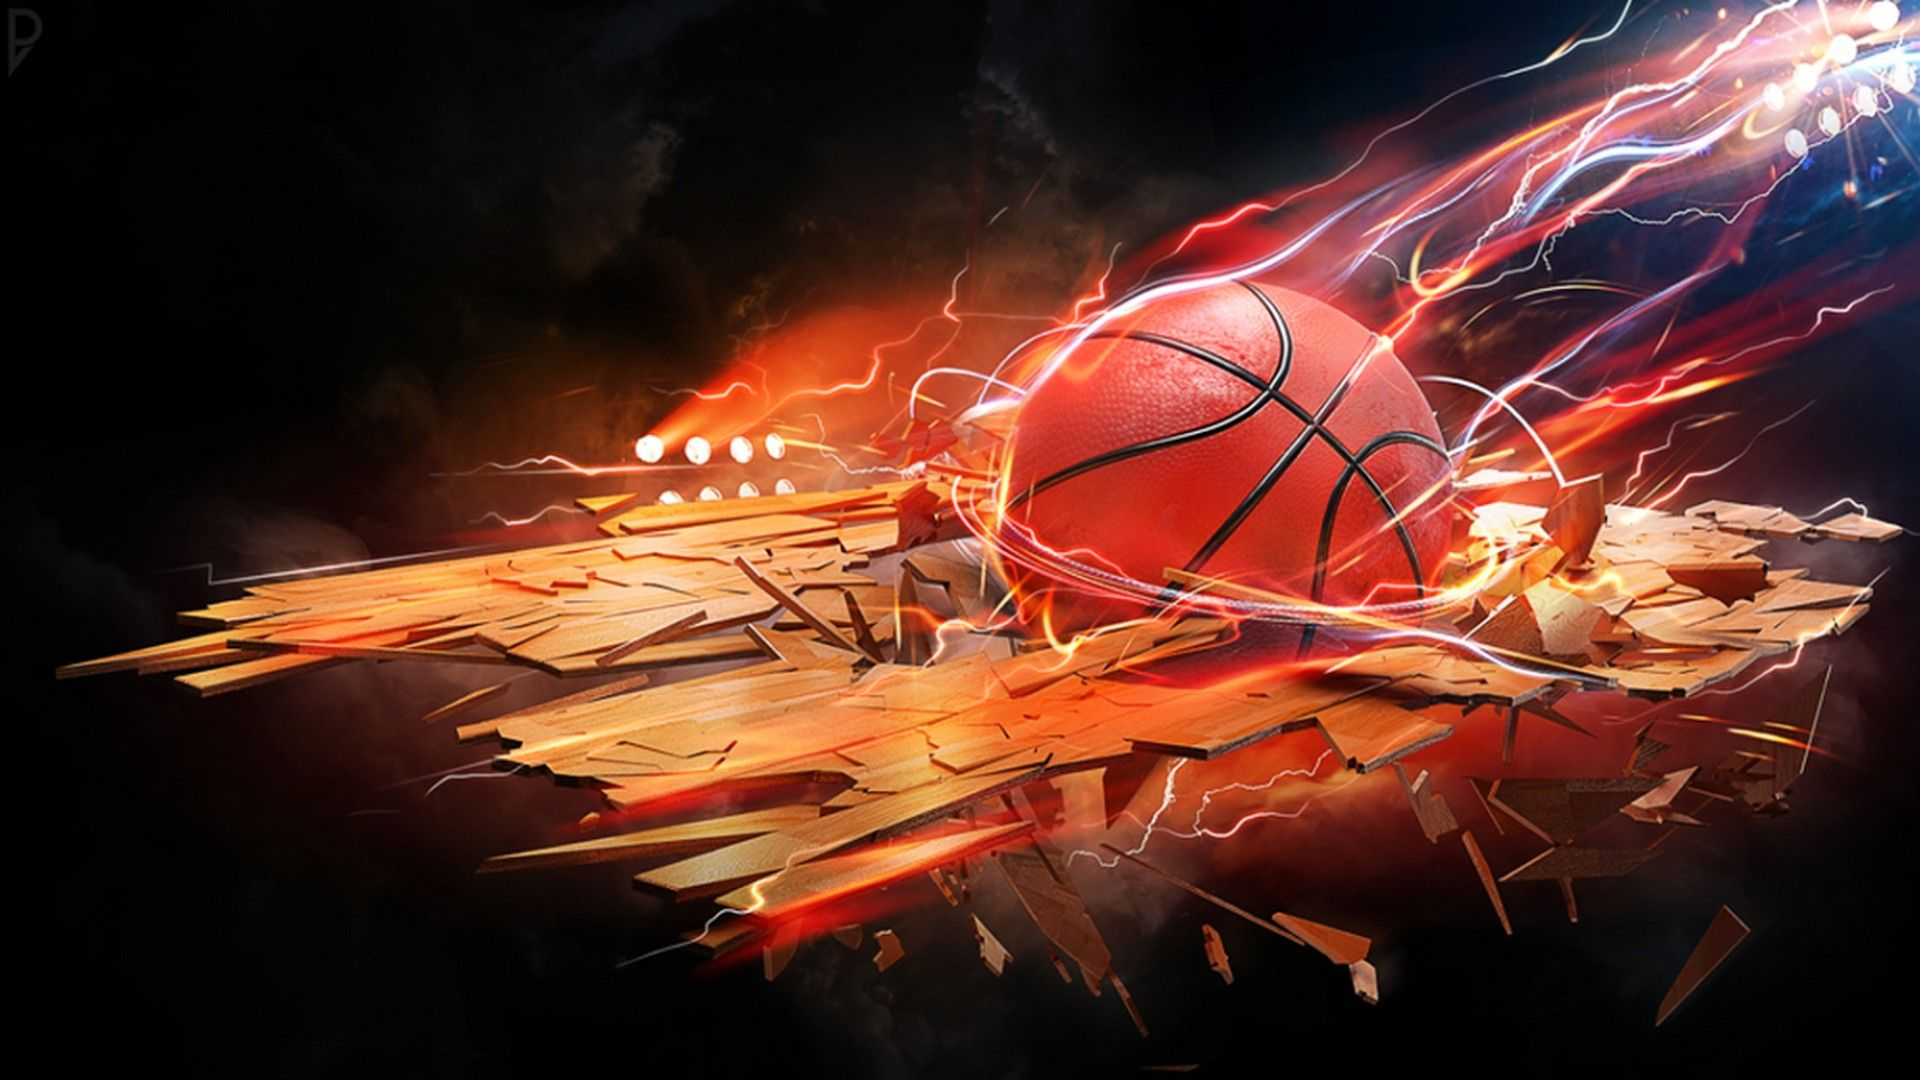 Basketball Wallpaper Best Basketball Wallpapers 2020 Cool 1920x1080